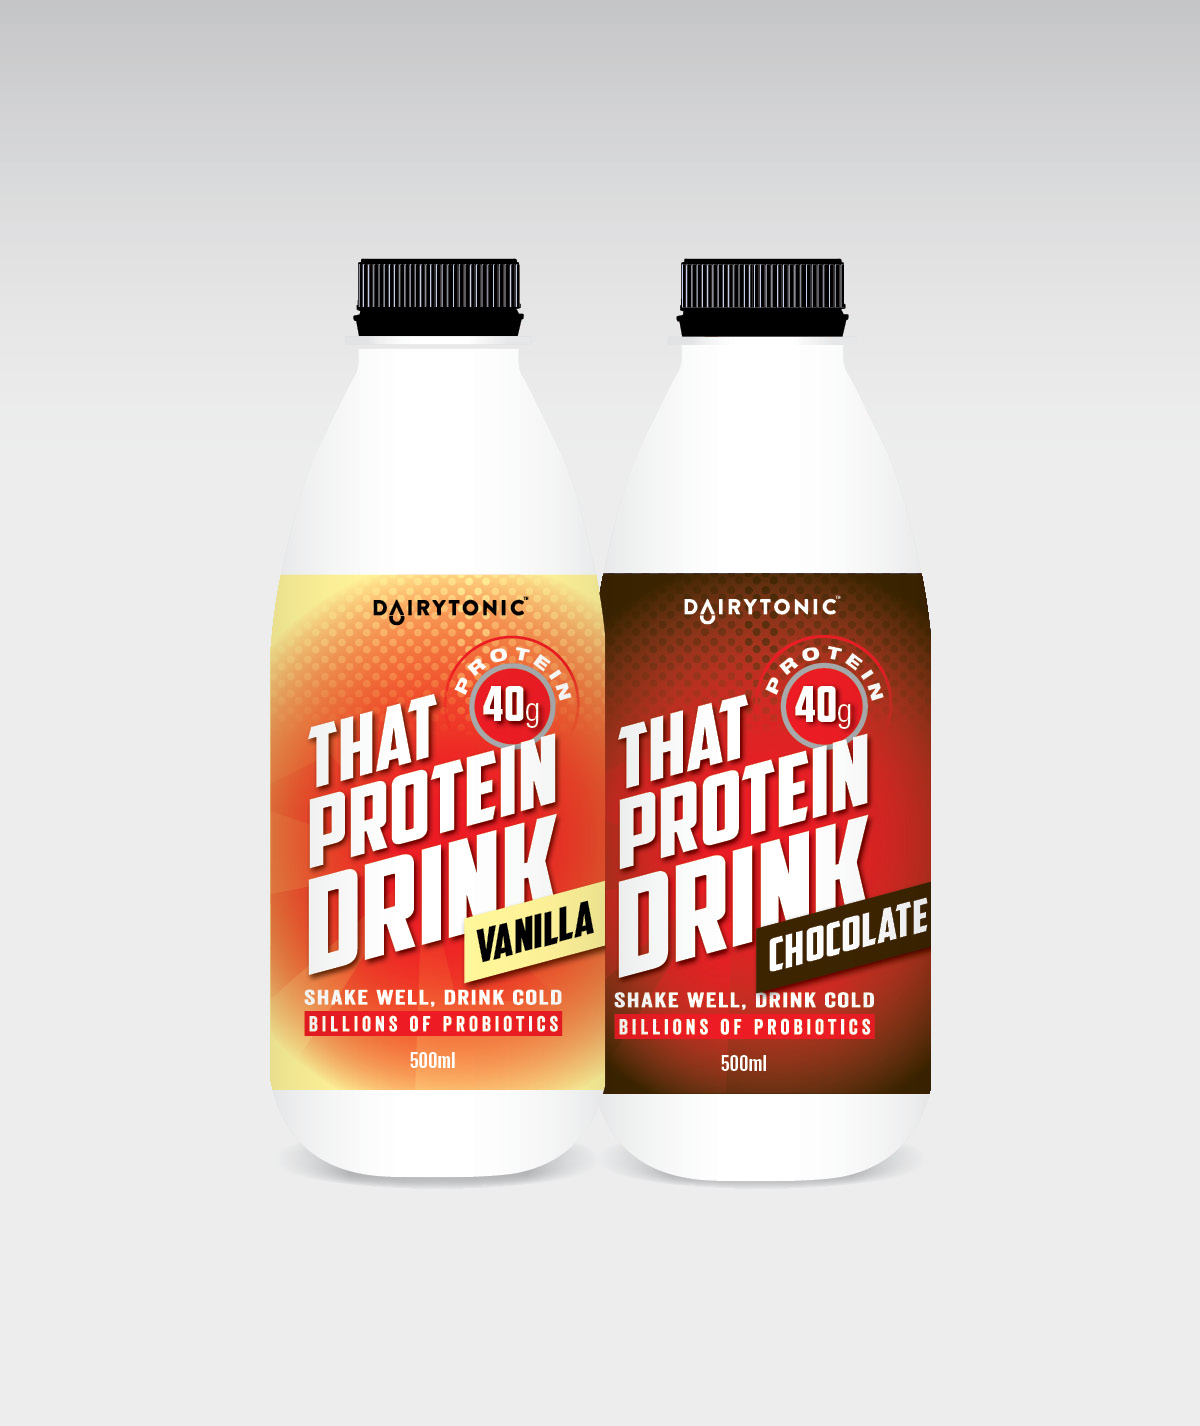 protein drink design printing dandenong melbourne